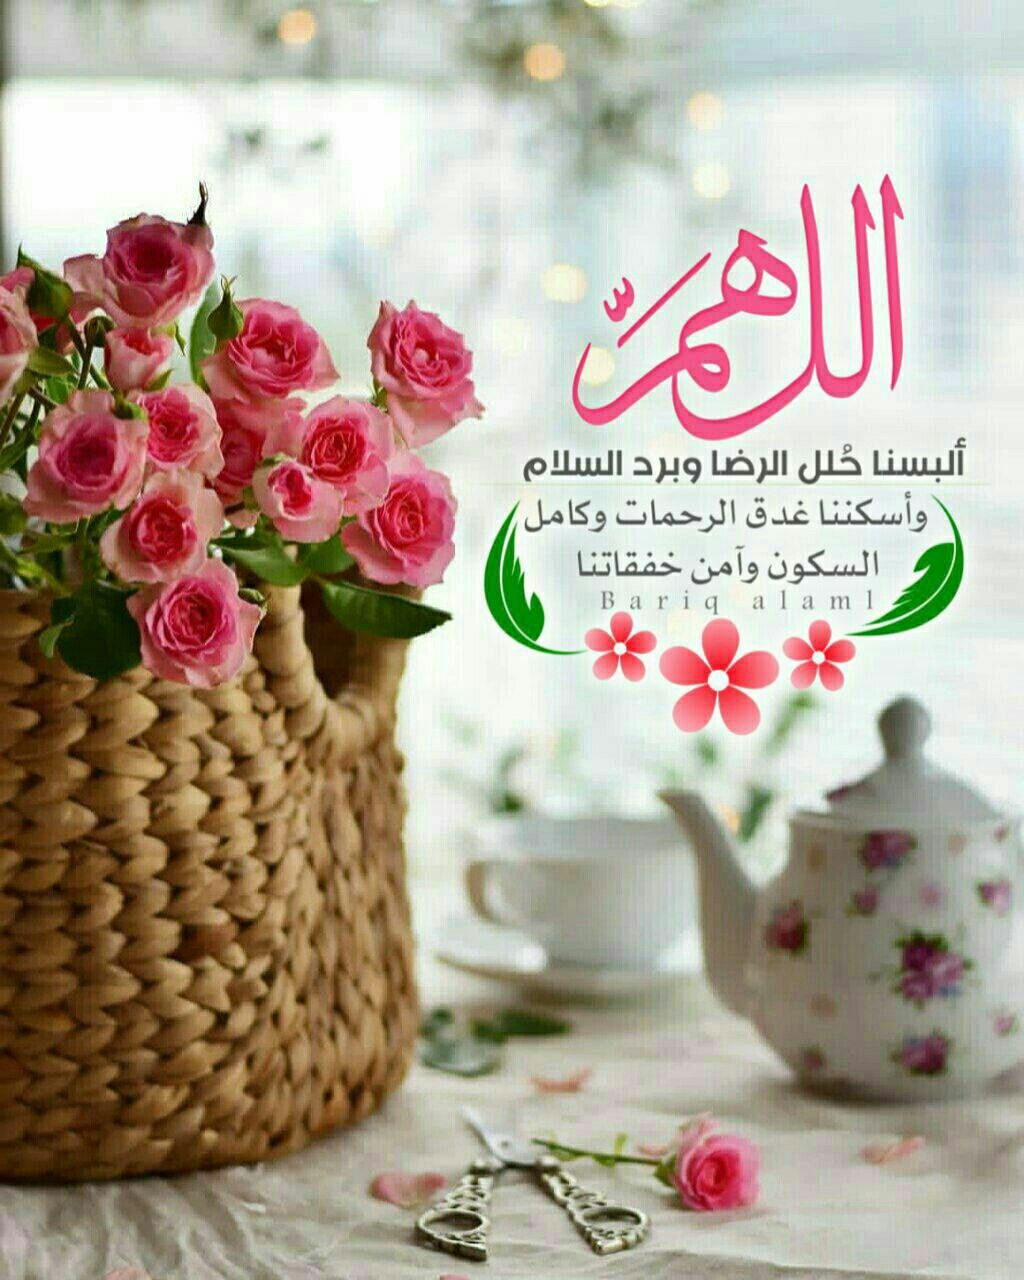 Pin By رحمة عبد الهادي On أجيب دعوة الداعي Place Card Holders Cards Place Cards